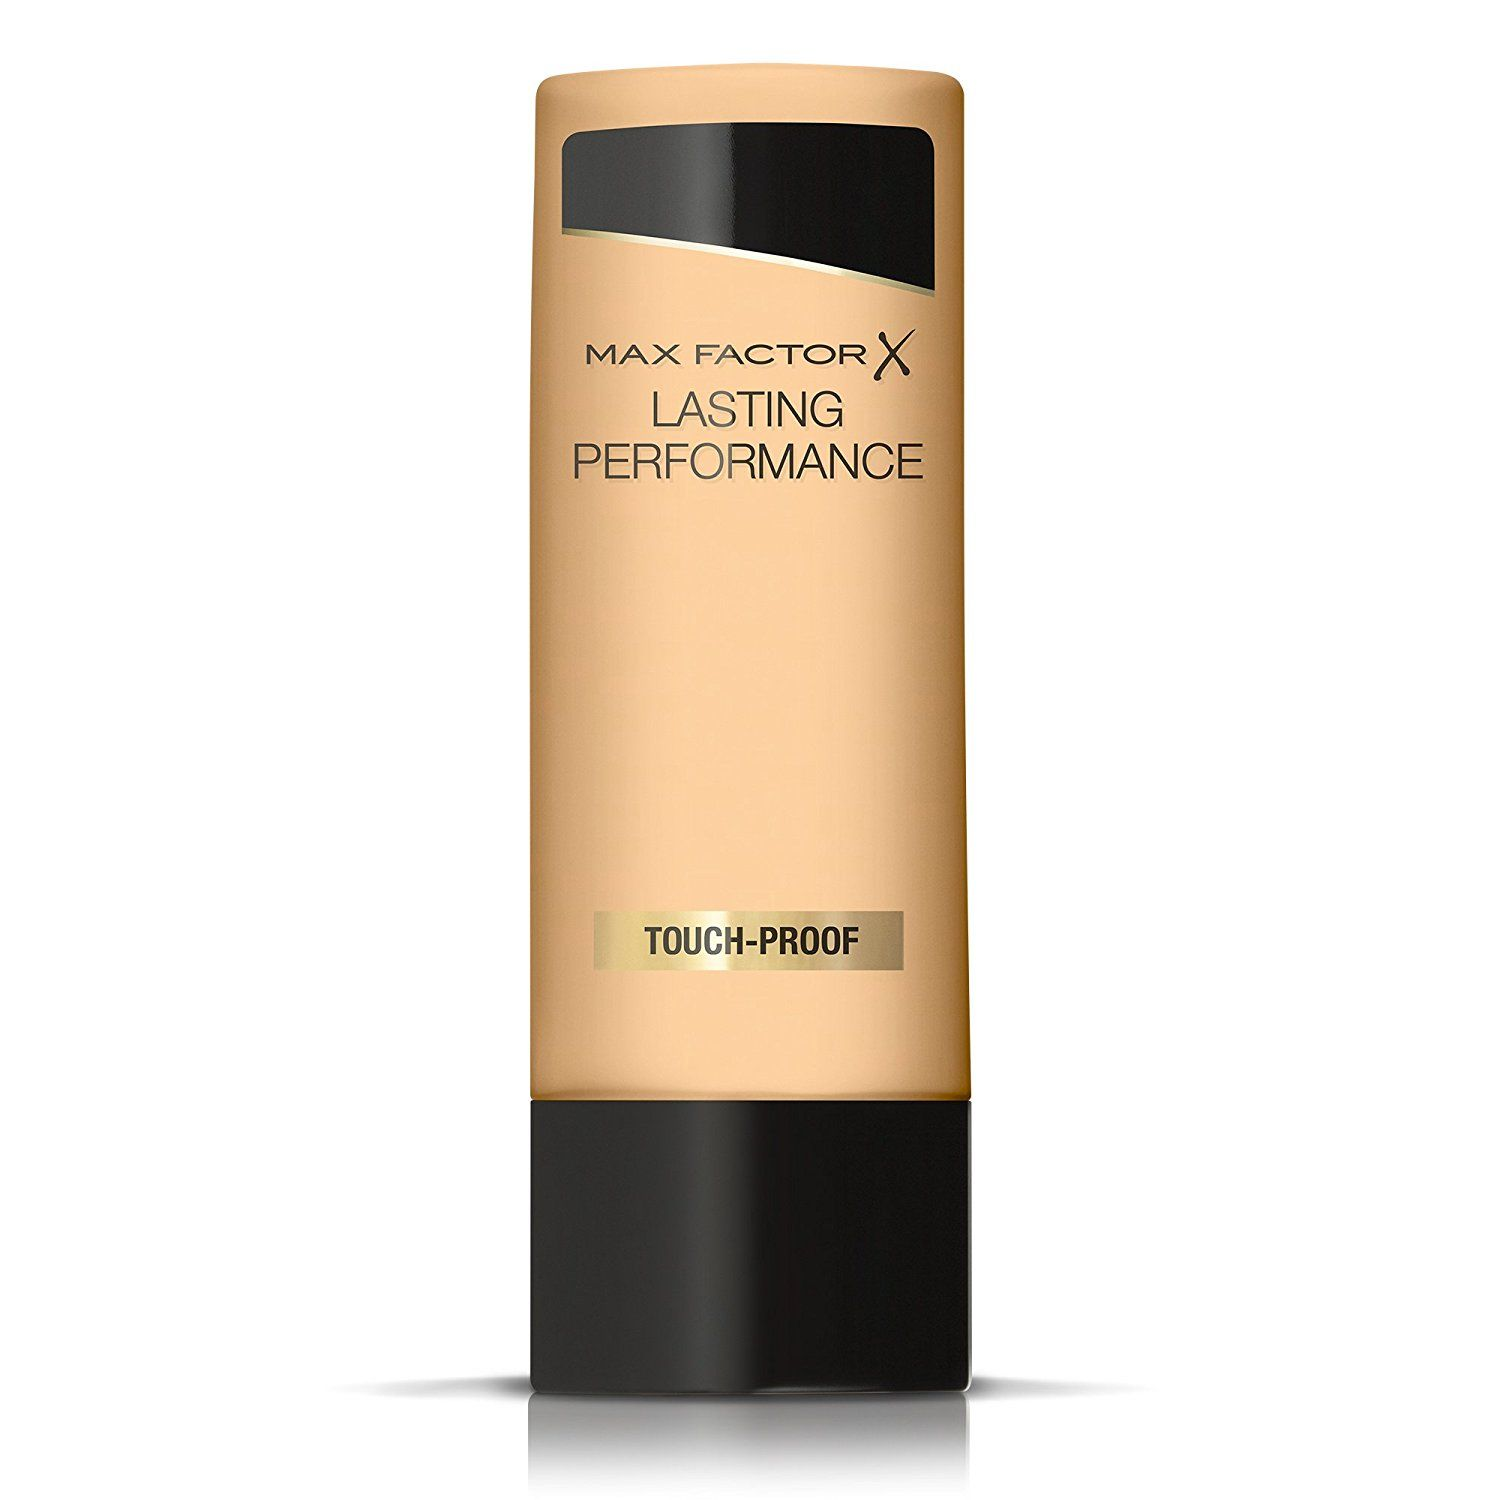 3 x Max Factor Lasting Performance Touch Proof Foundation 35ml - 105 Soft Beige